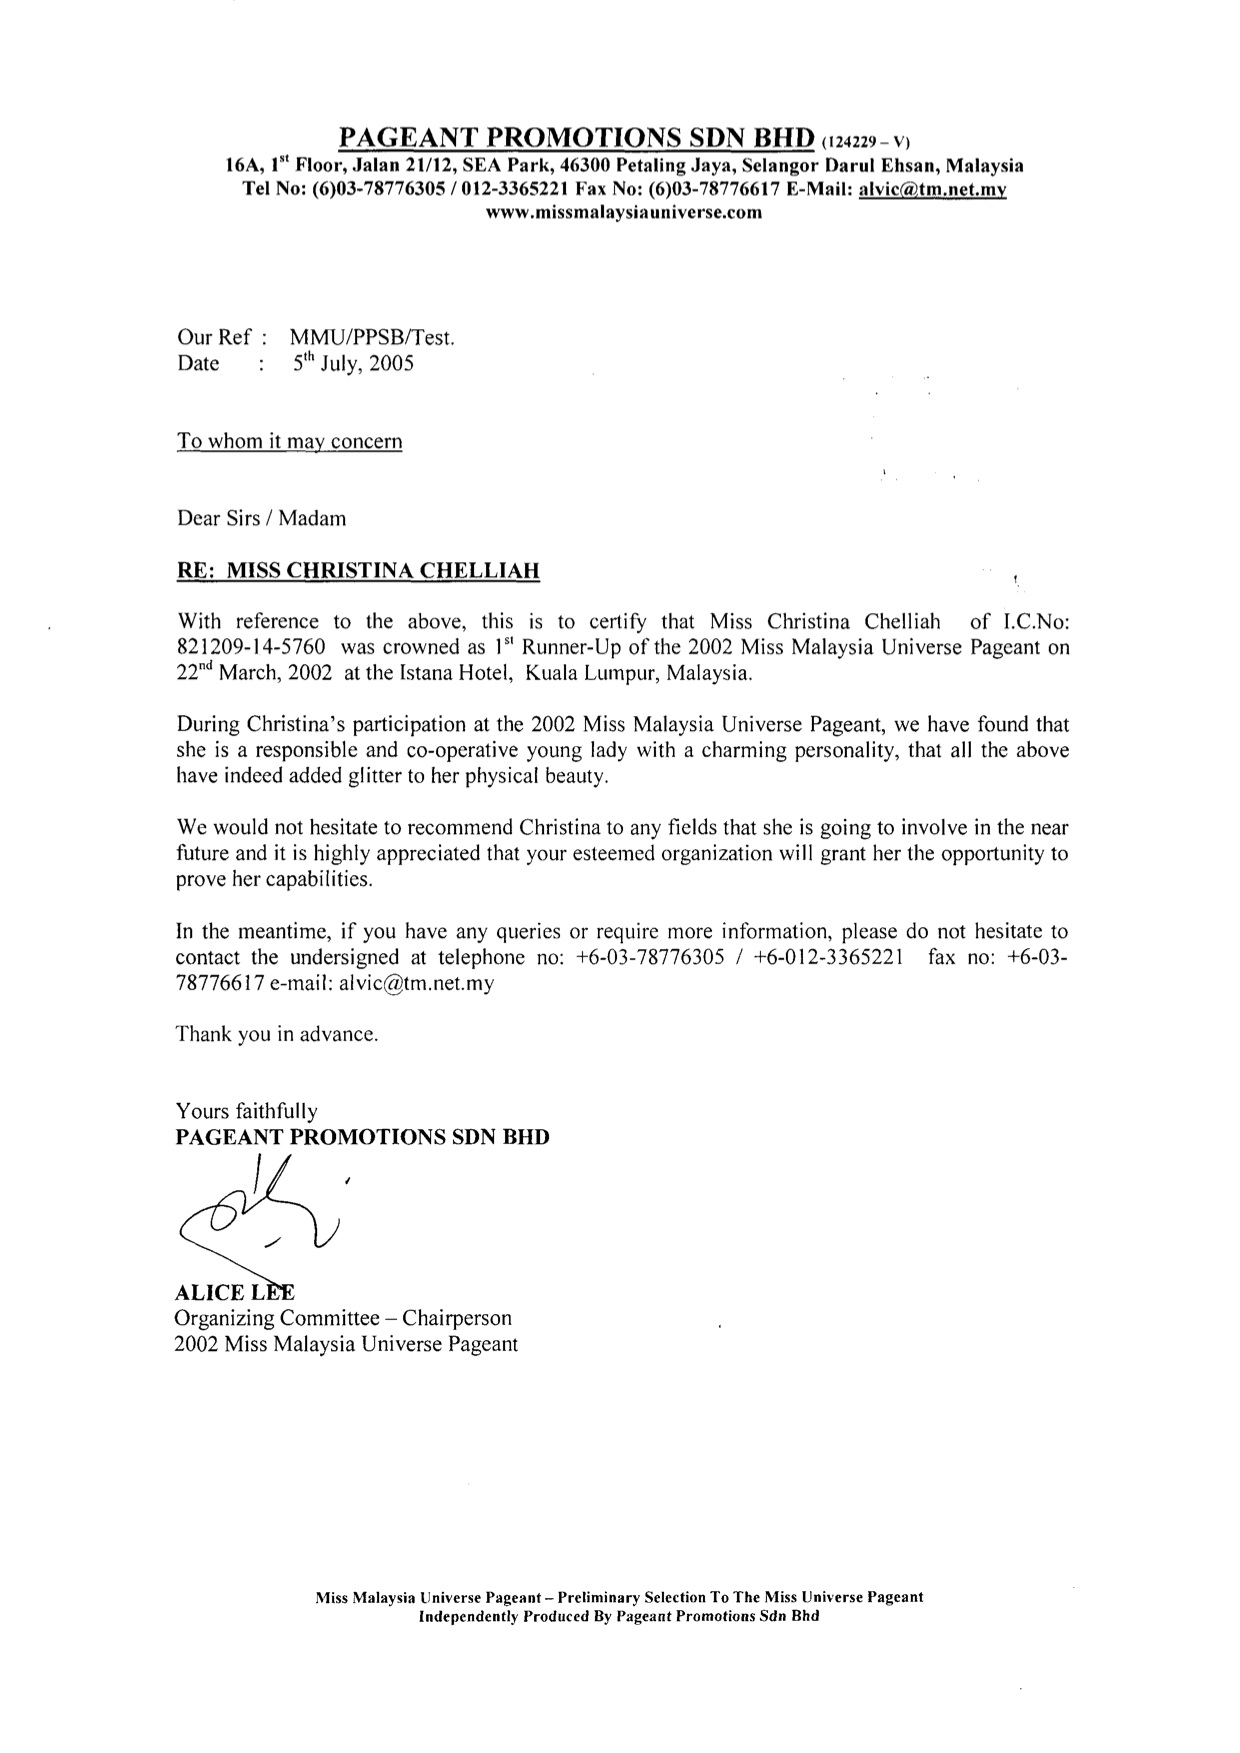 2005 - Modeling - Pageant Promotions Ms Malaysia Universe - Reference Letter.jpg